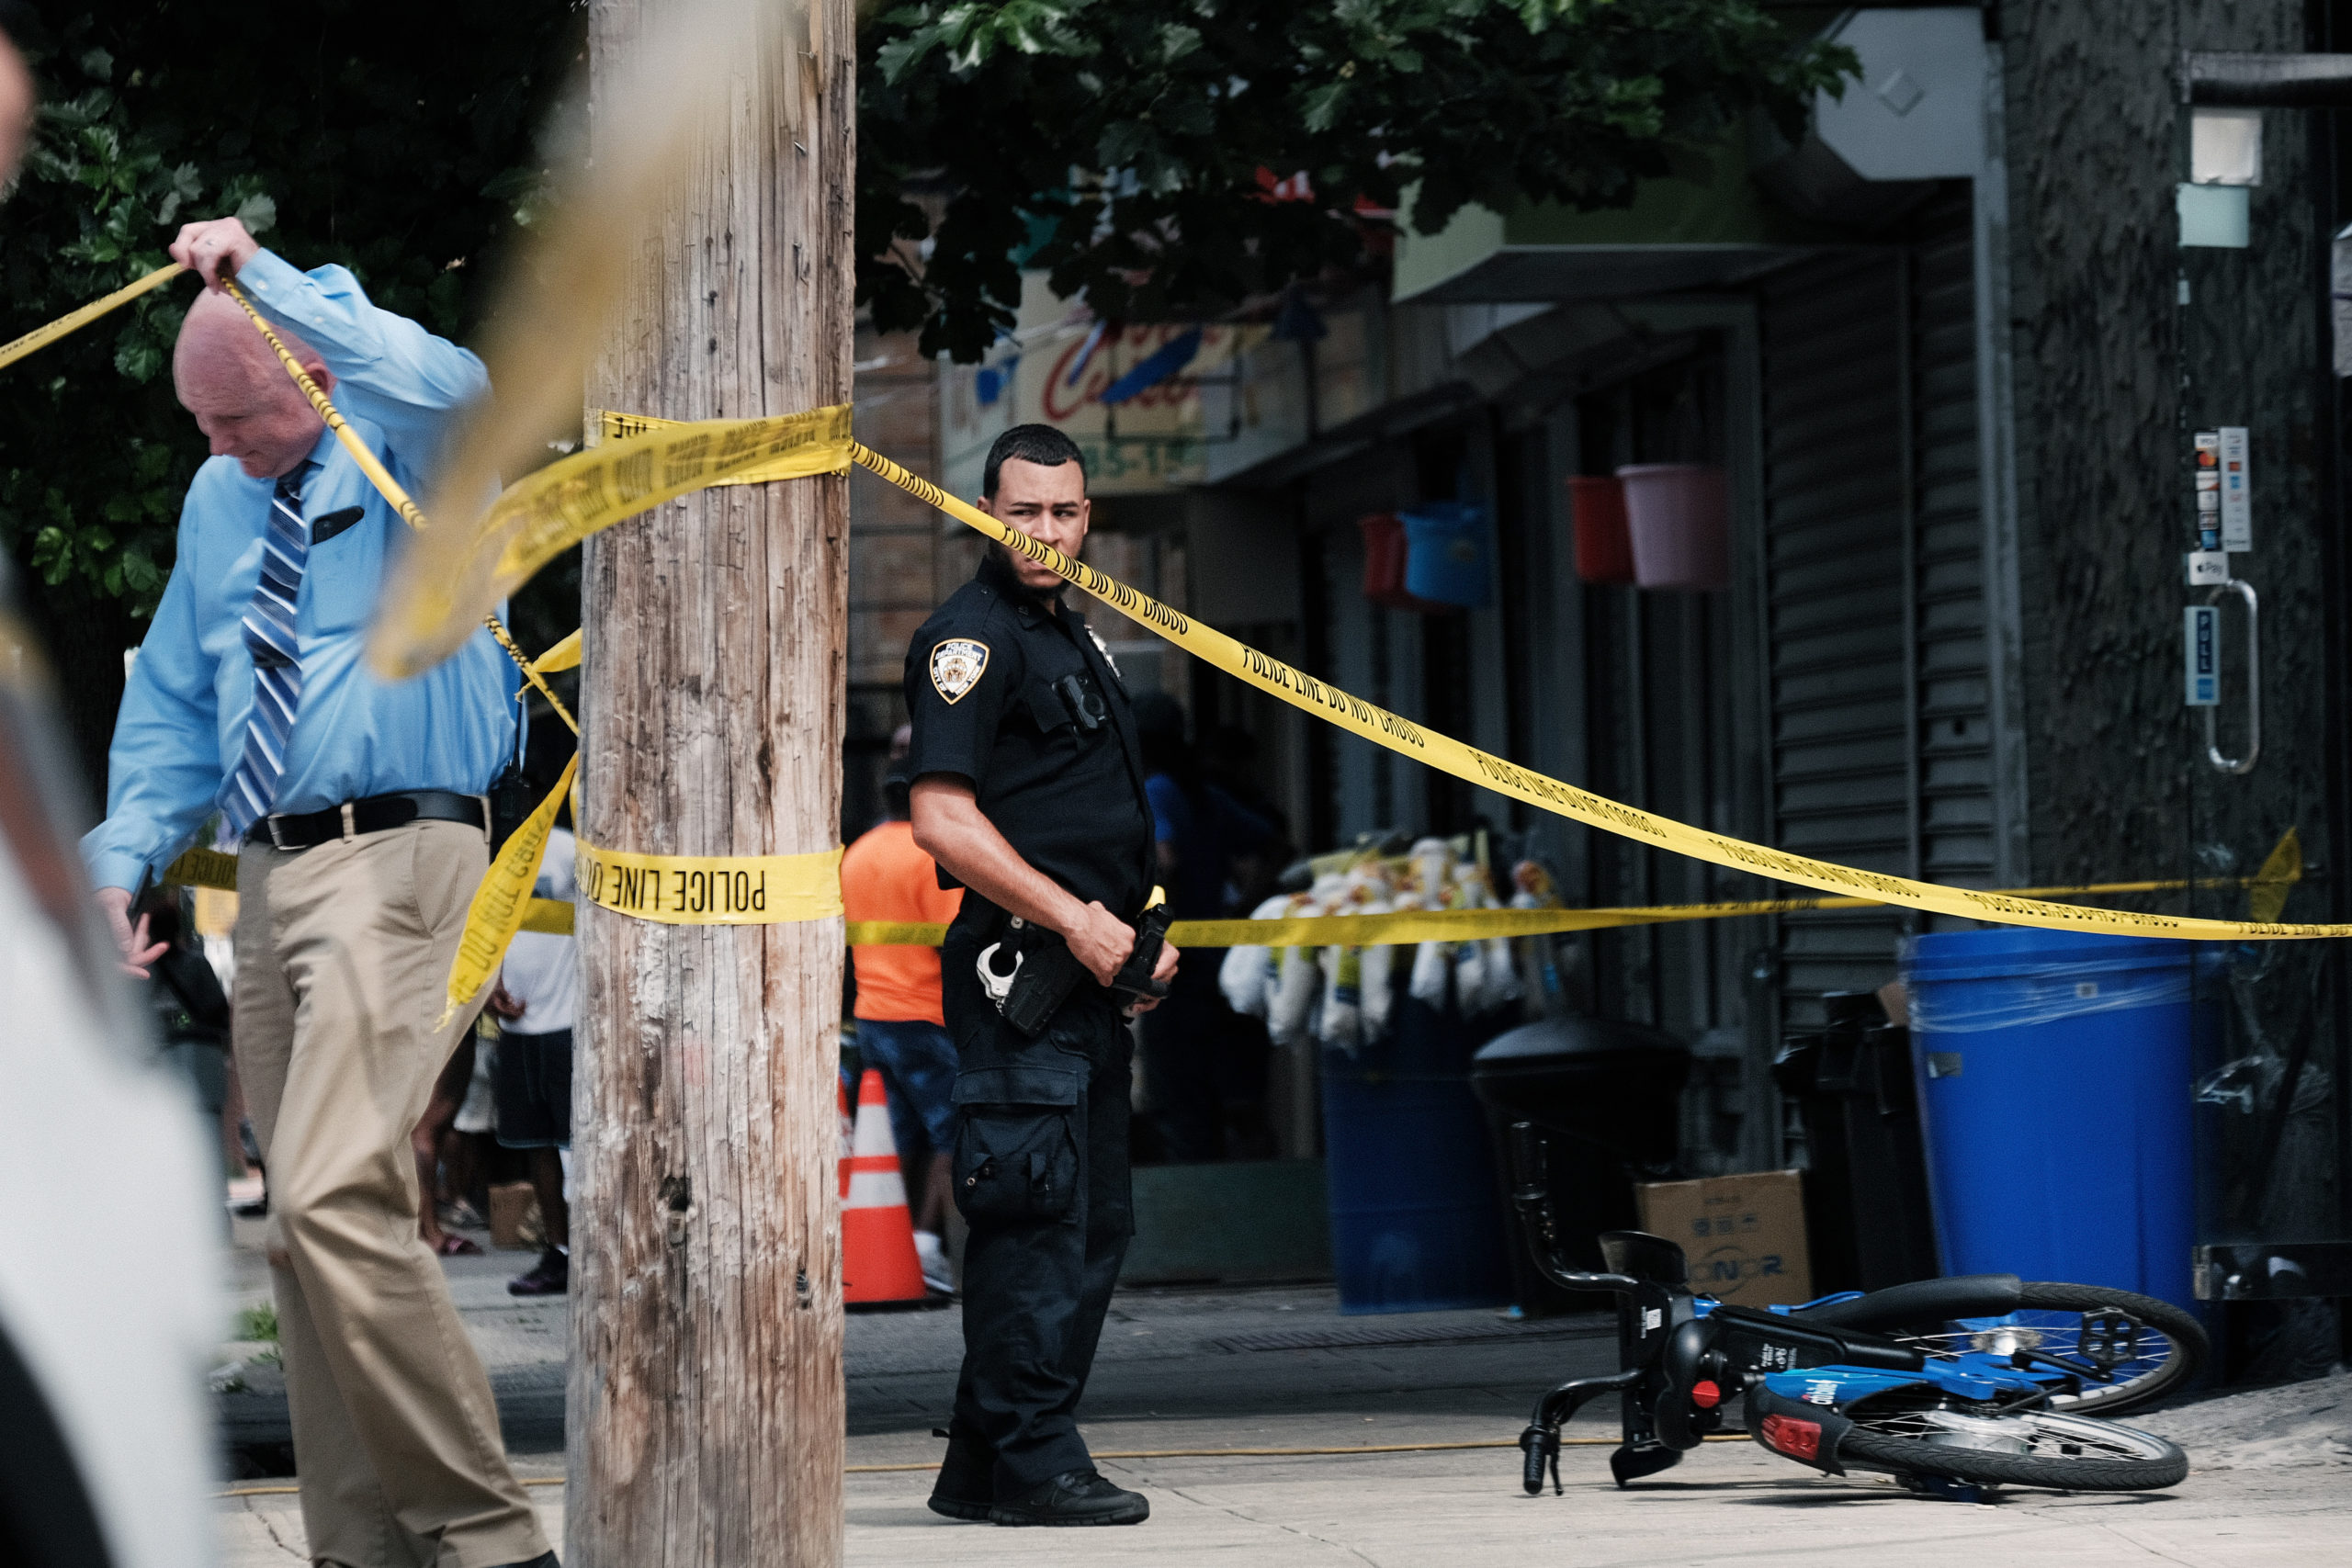 Police converge on the scene of a shooting in Brooklyn, one of numerous during the day, on July 14, 2021 in New York City. (Photo by Spencer Platt/Getty Images)